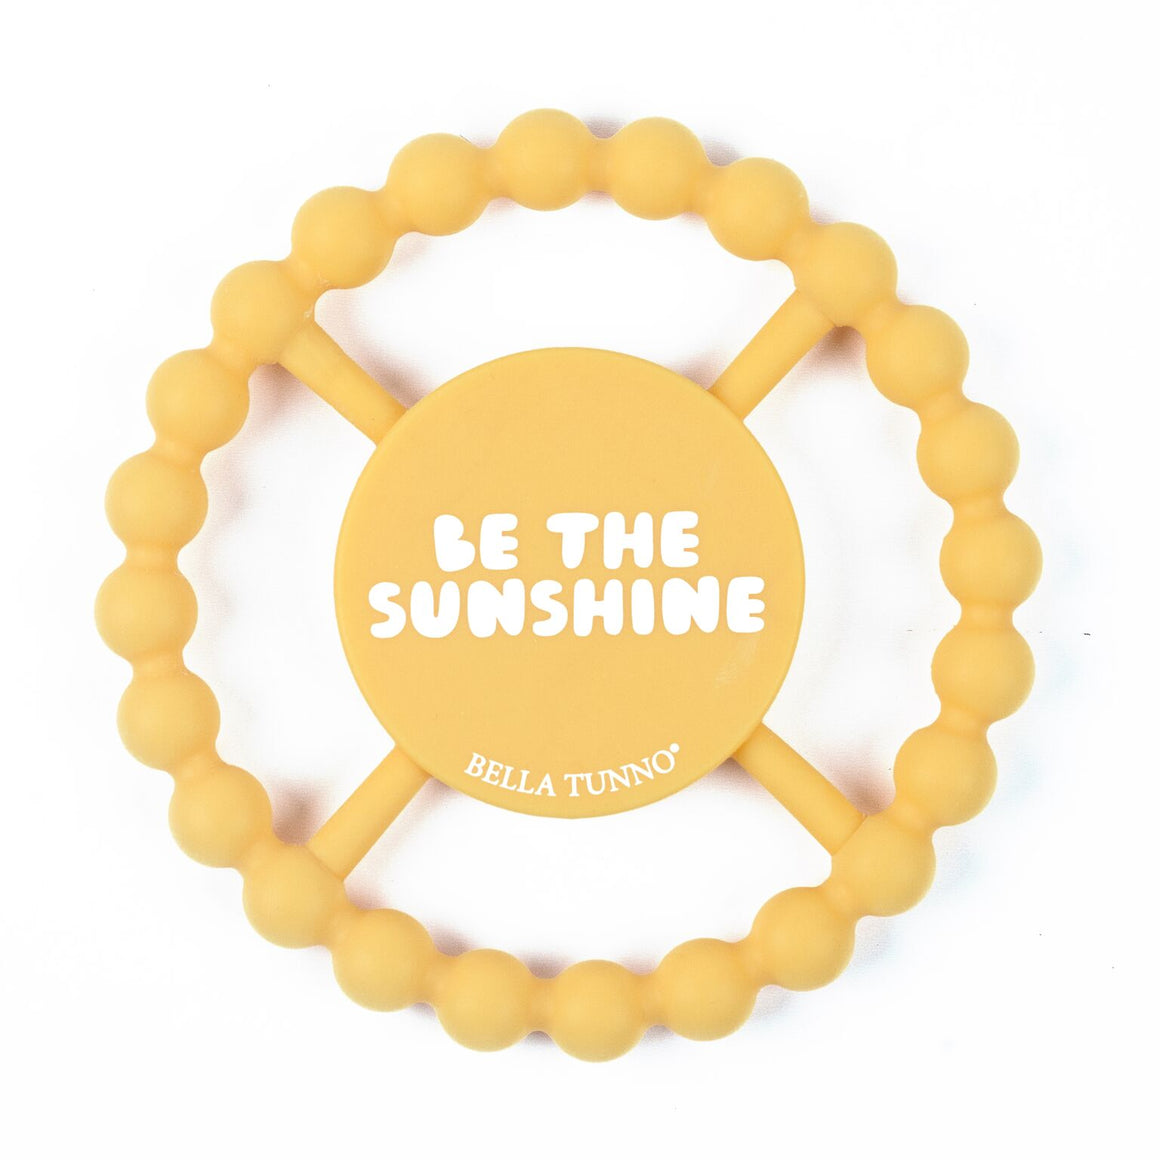 Easy grip 100% FDA Approved Food Grade Silicone Be the Sunshine ball teether in bright yellow